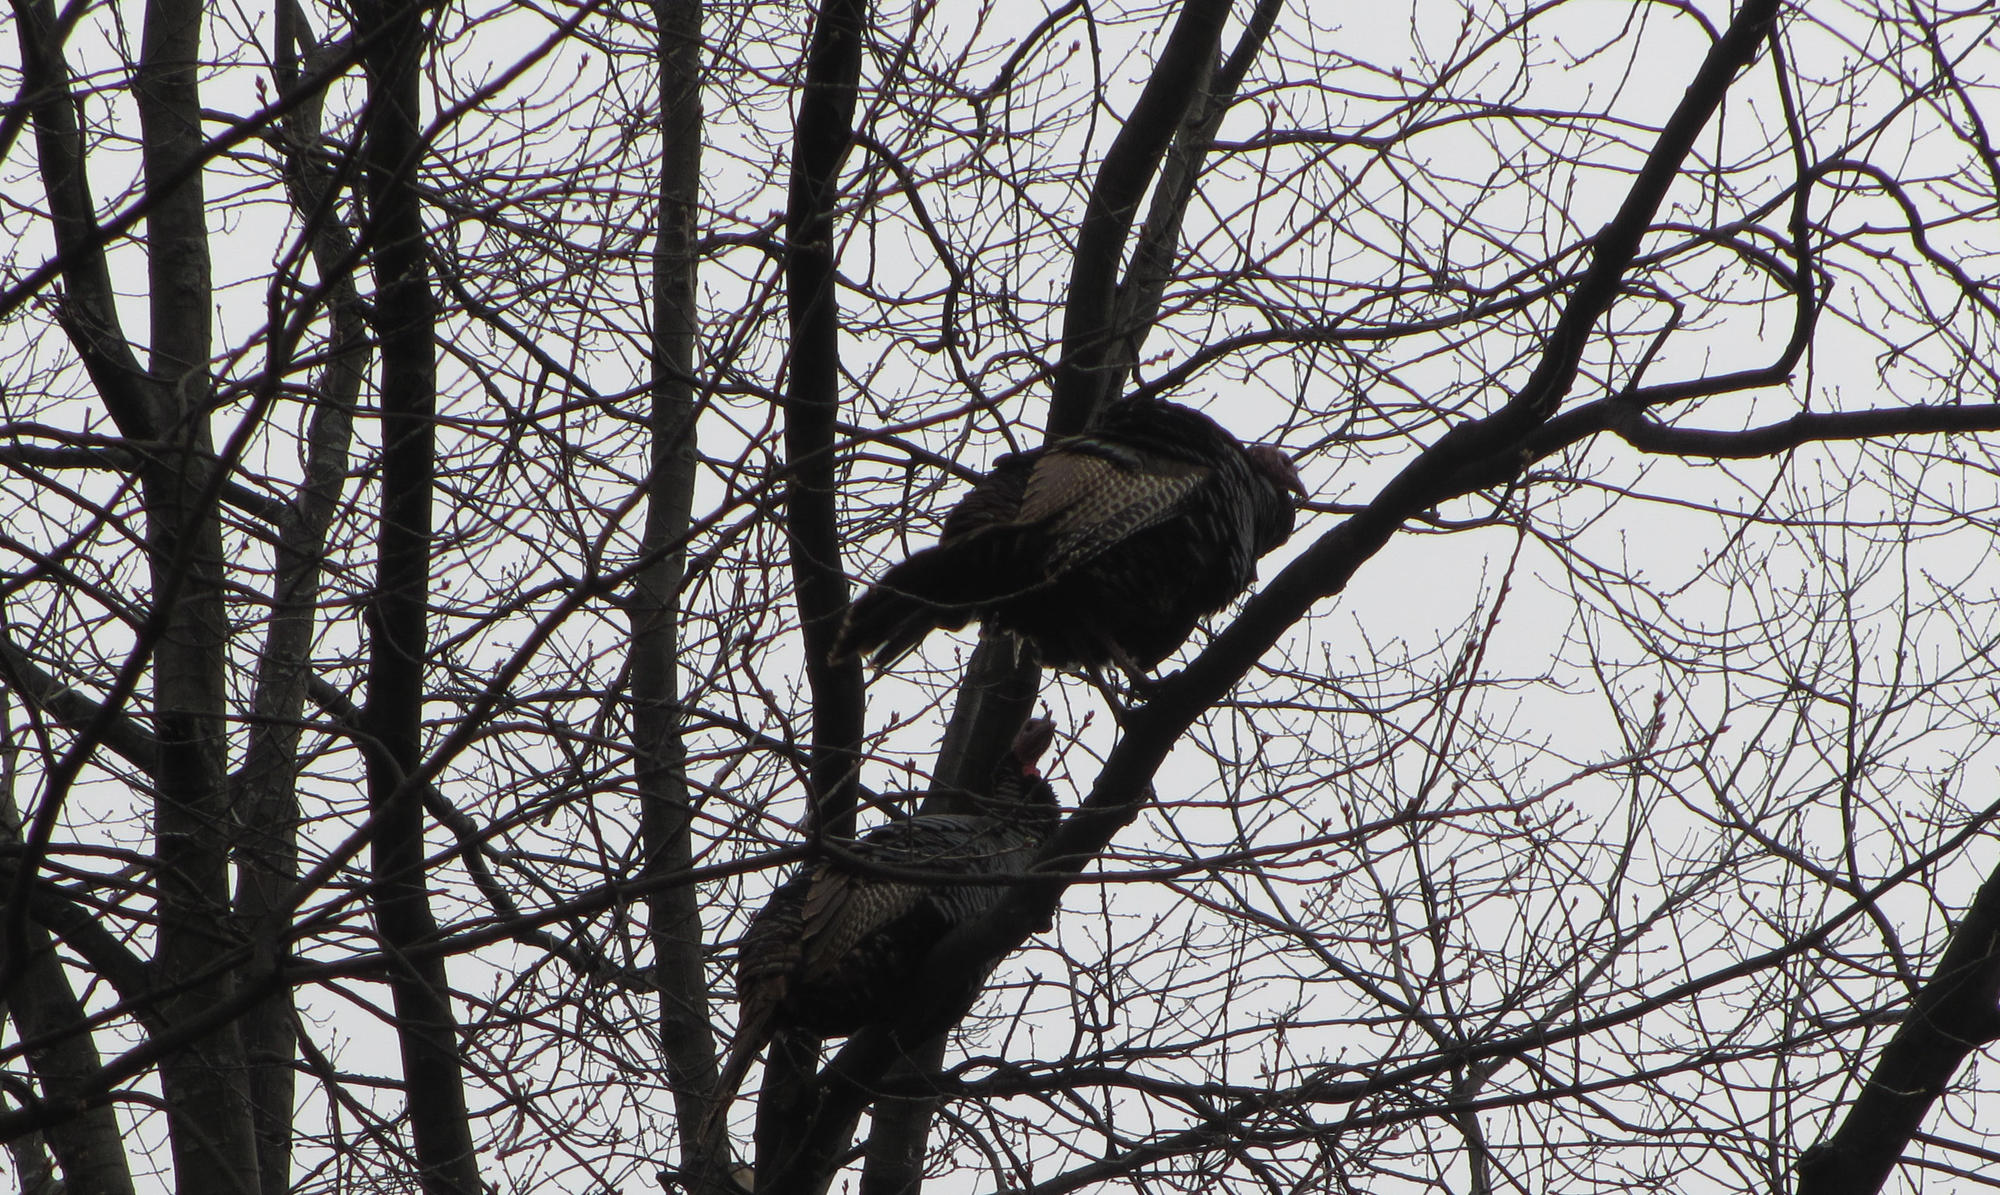 Two turkeys in tree, showing plumage